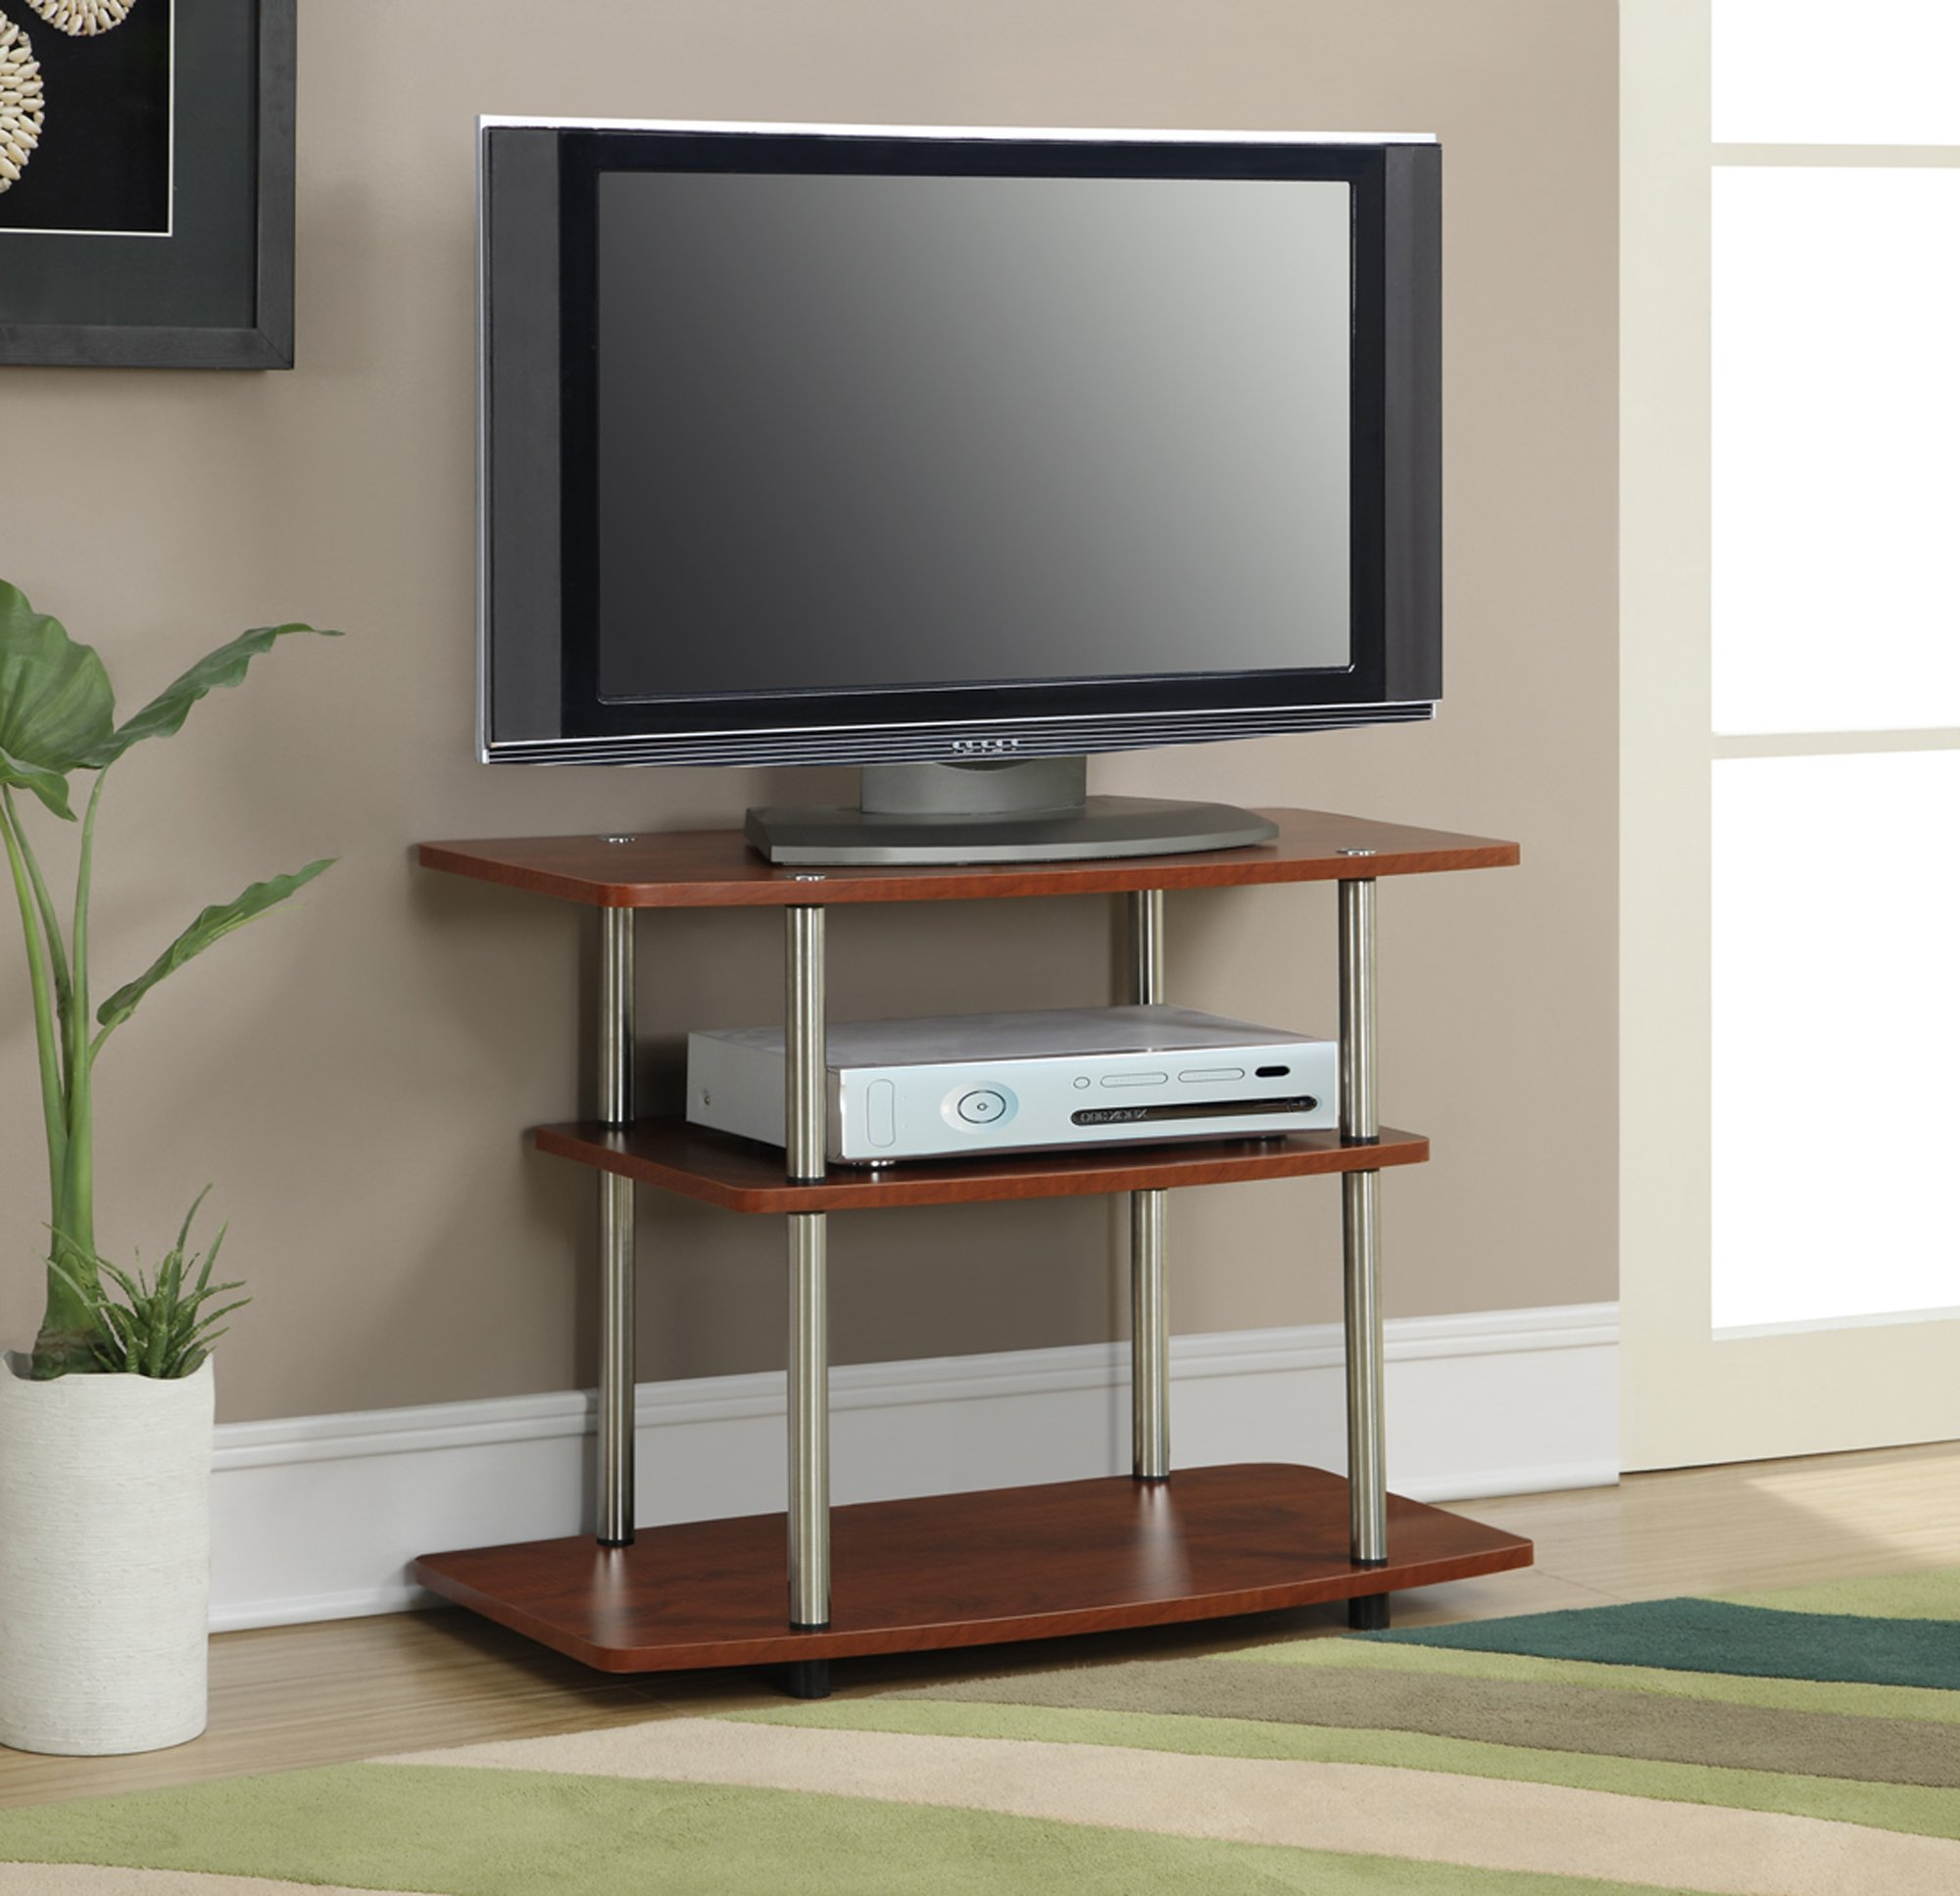 Convenience Concepts Designs2Go 3-Tier TV Stand for Flat Panel Television Up to 32-Inch or 80-Pound, Cherry by Convenience Concepts (Image #3)